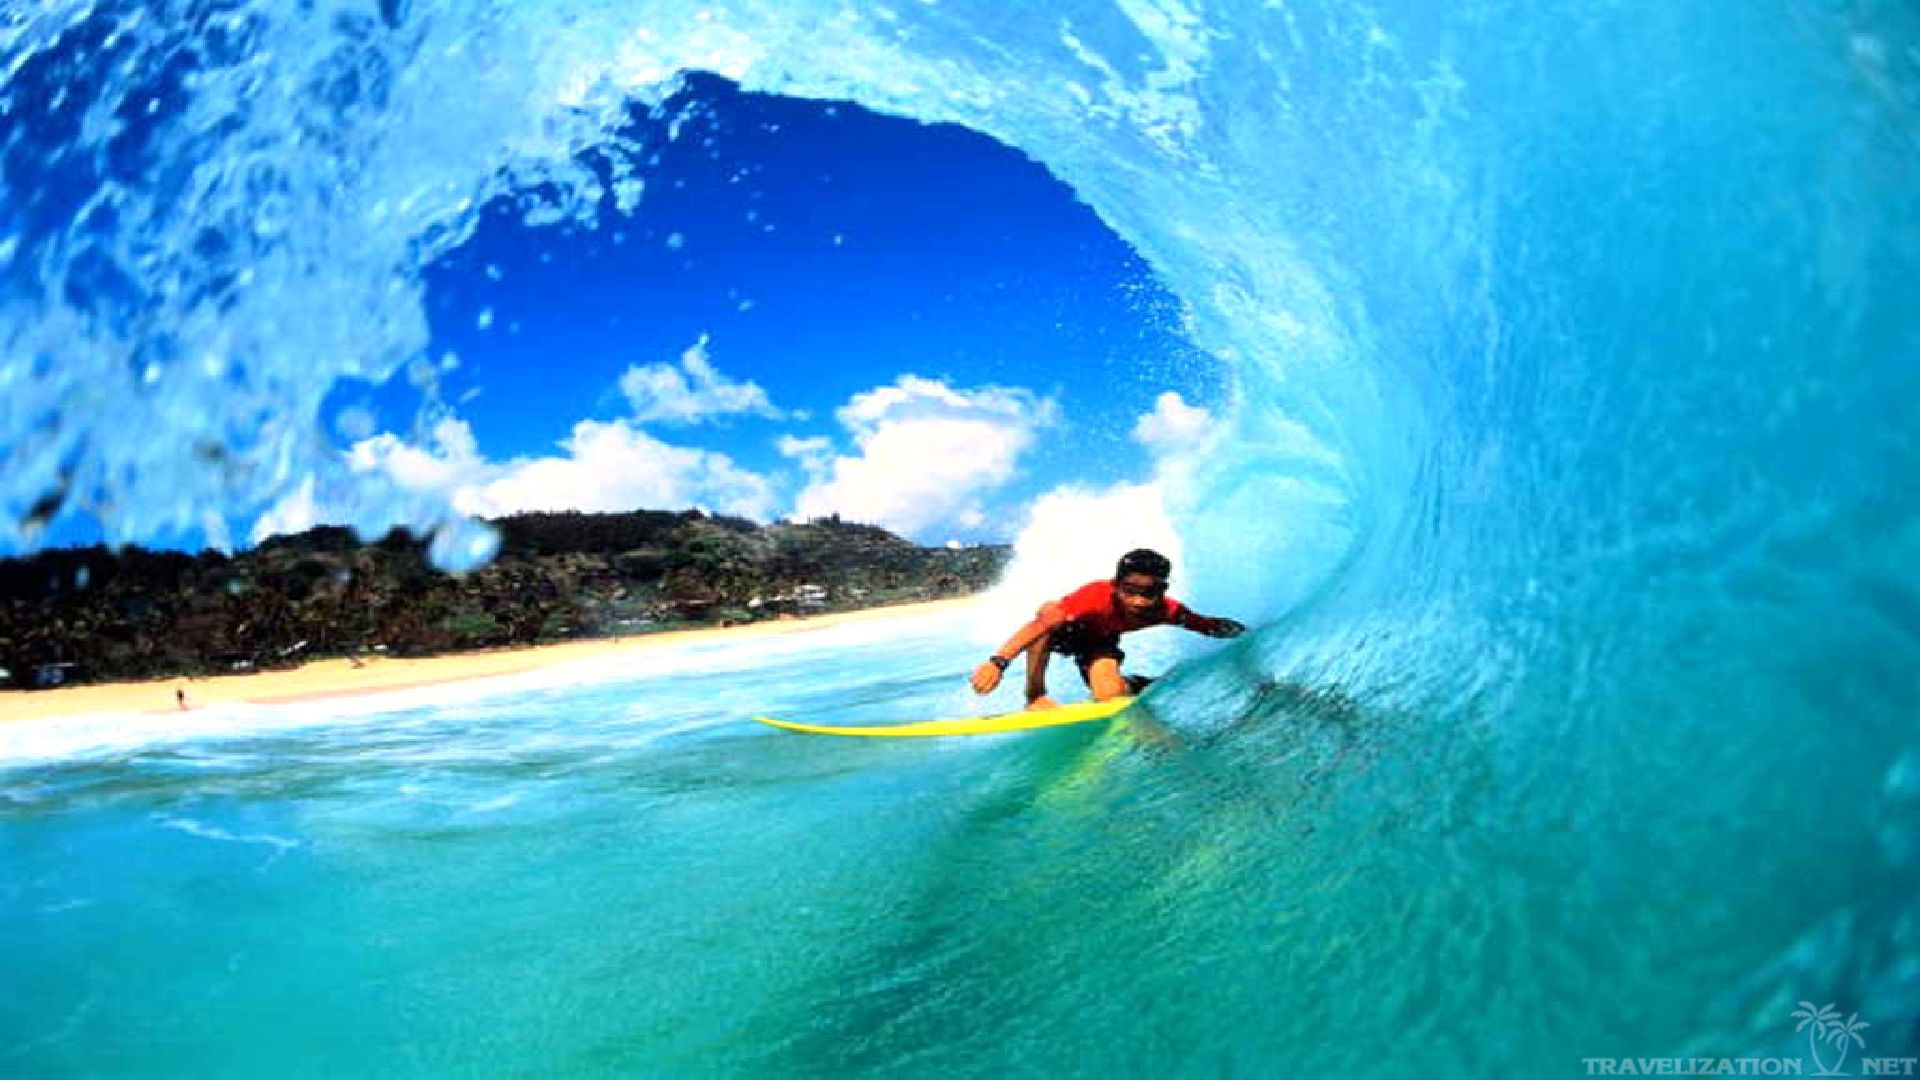 ... 2560×1920. Beautiful Scene Surfing Wallpapers